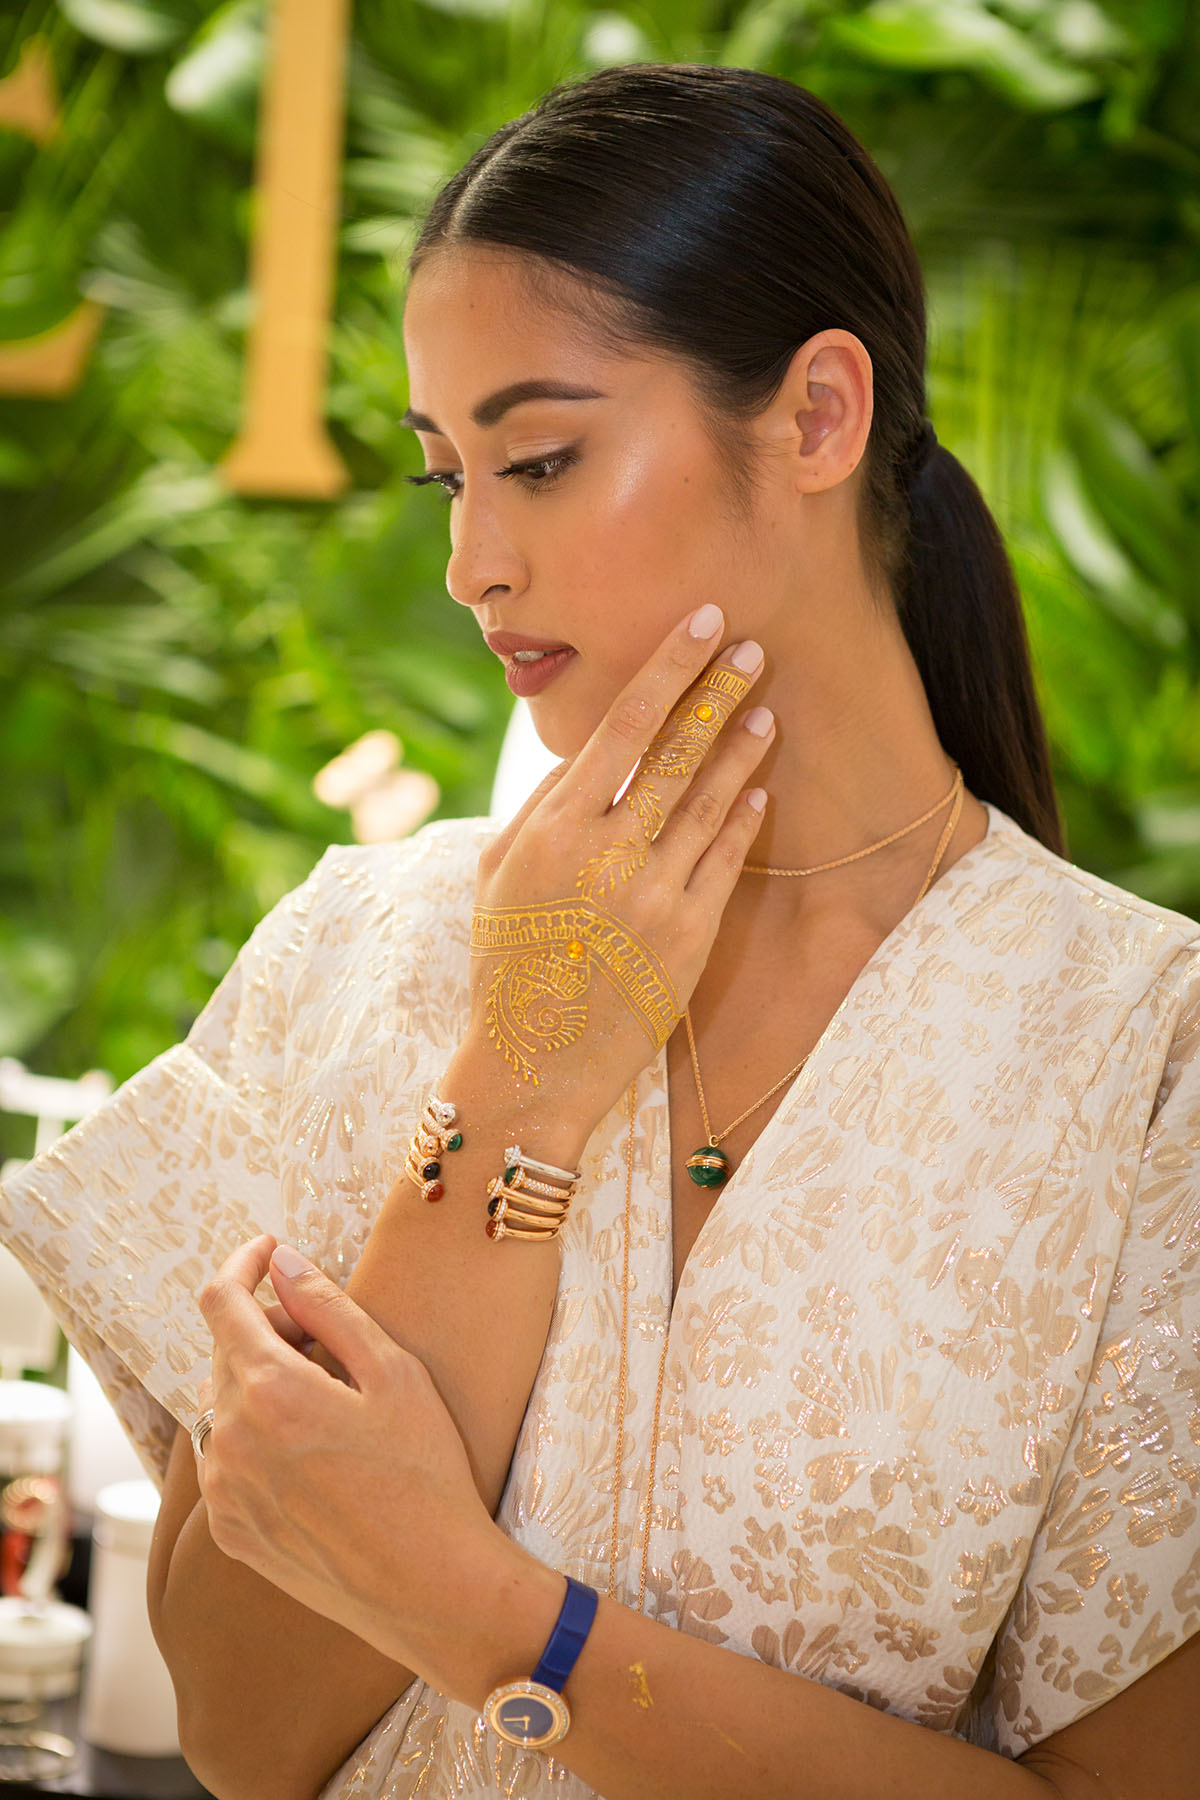 Model showcasing new jewelry at the Piaget event by Loesje Kessels Fashion Photographer Dubai